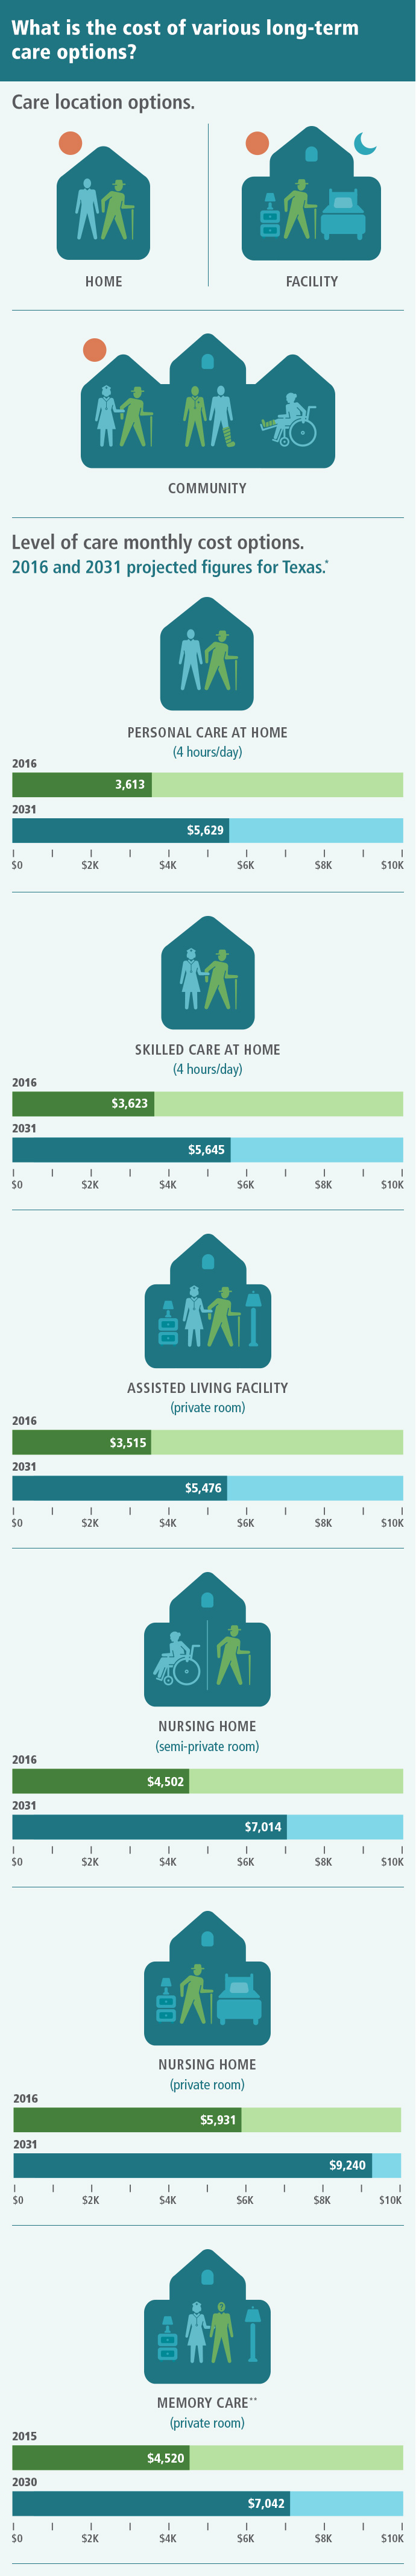 What is the cost of various long-term care options? Care may be provided in three locations. The first is your home, where you may receive personal care or skilled care services. The second is at the site of community organizations that you visit to receive services. The third is a residential facility in which you live full time. The cost of services depends on their location and frequency. Four hours per day of personal care in your home costs $3,422 per month in 2016 and is projected to cost $4,407 in 2031. Four hours of skilled care per day in your home costs $3,432 per month in 2016 and is projected to cost $4,047 in 2031. A private room in an assisted living facility costs $3,336 in 2016 and is projected to cost $7,469 in 2031. A semi-private room in a nursing home costs $3,961 in 2016 and is projected to cost $5,574 in 2031. A private room in a nursing home costs $5,111 in 2016 and is projected to cost $7,177 in 2031. A private room in a memory care residential facility costs $4,520 in 2015 and is projected to cost $6,320 per month in 2030.